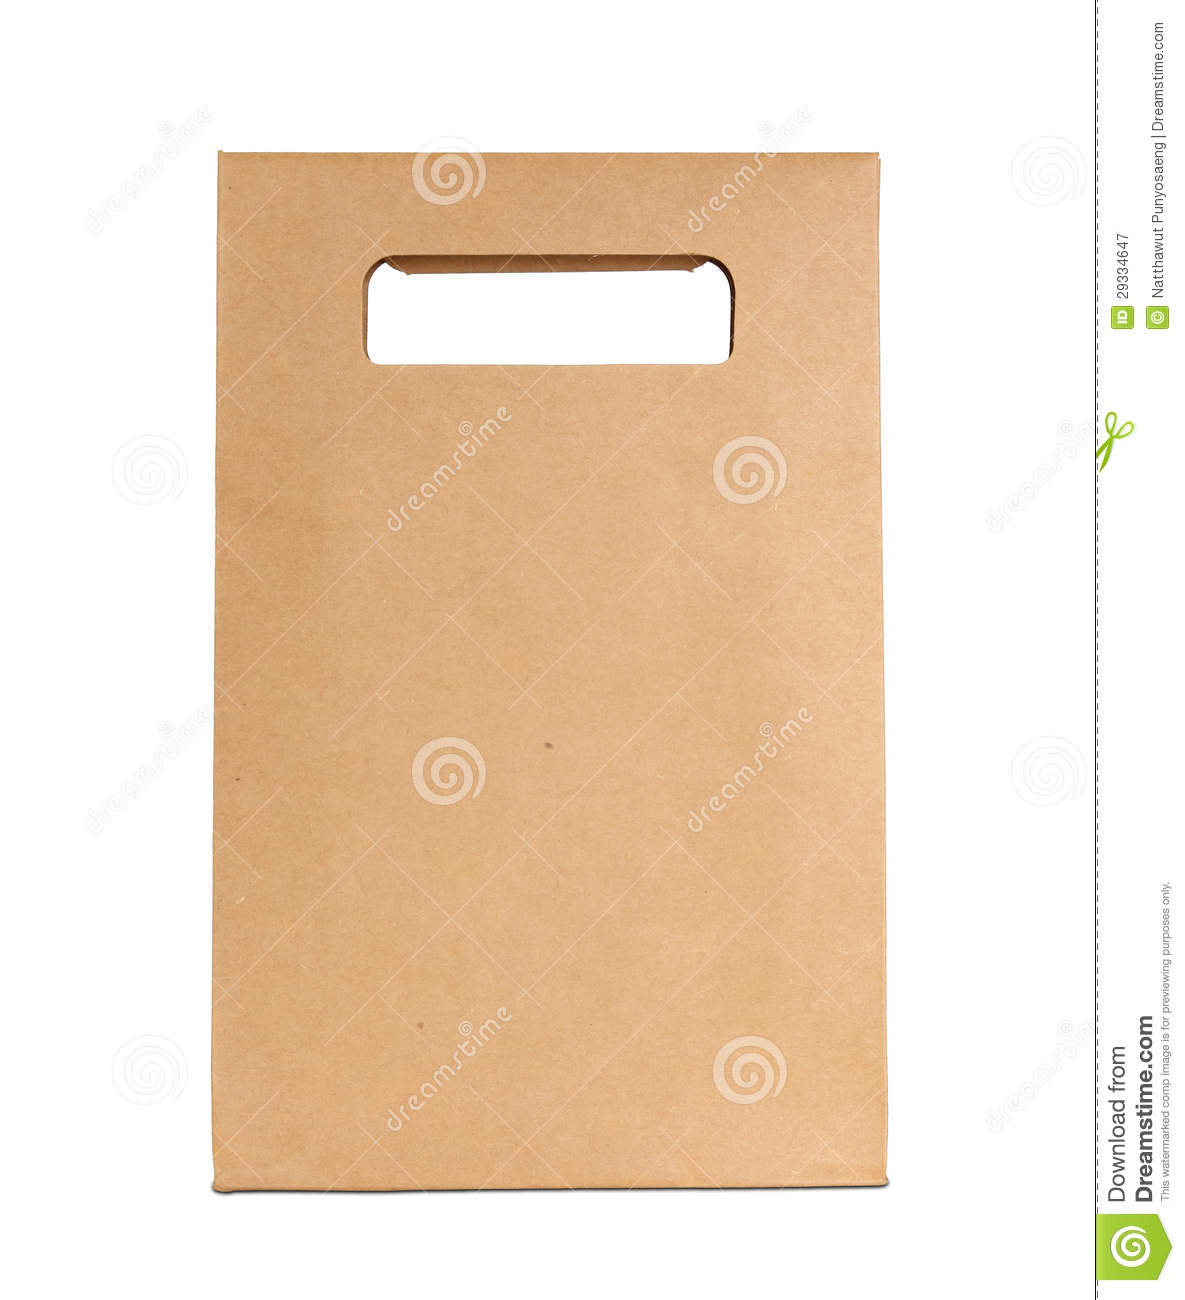 Paper bag yellow - Brown Paper Bag